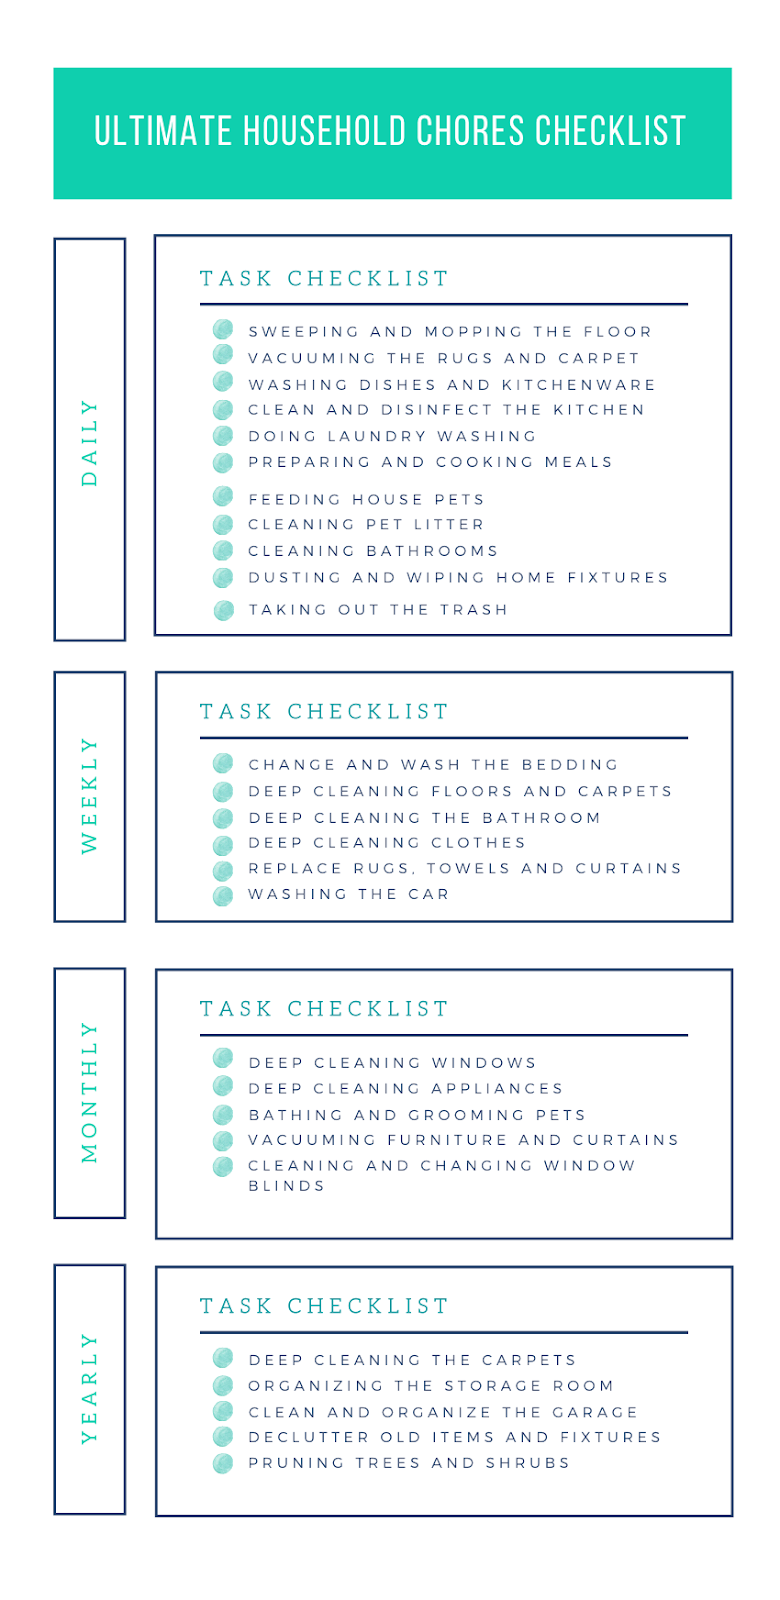 household chores checklist template